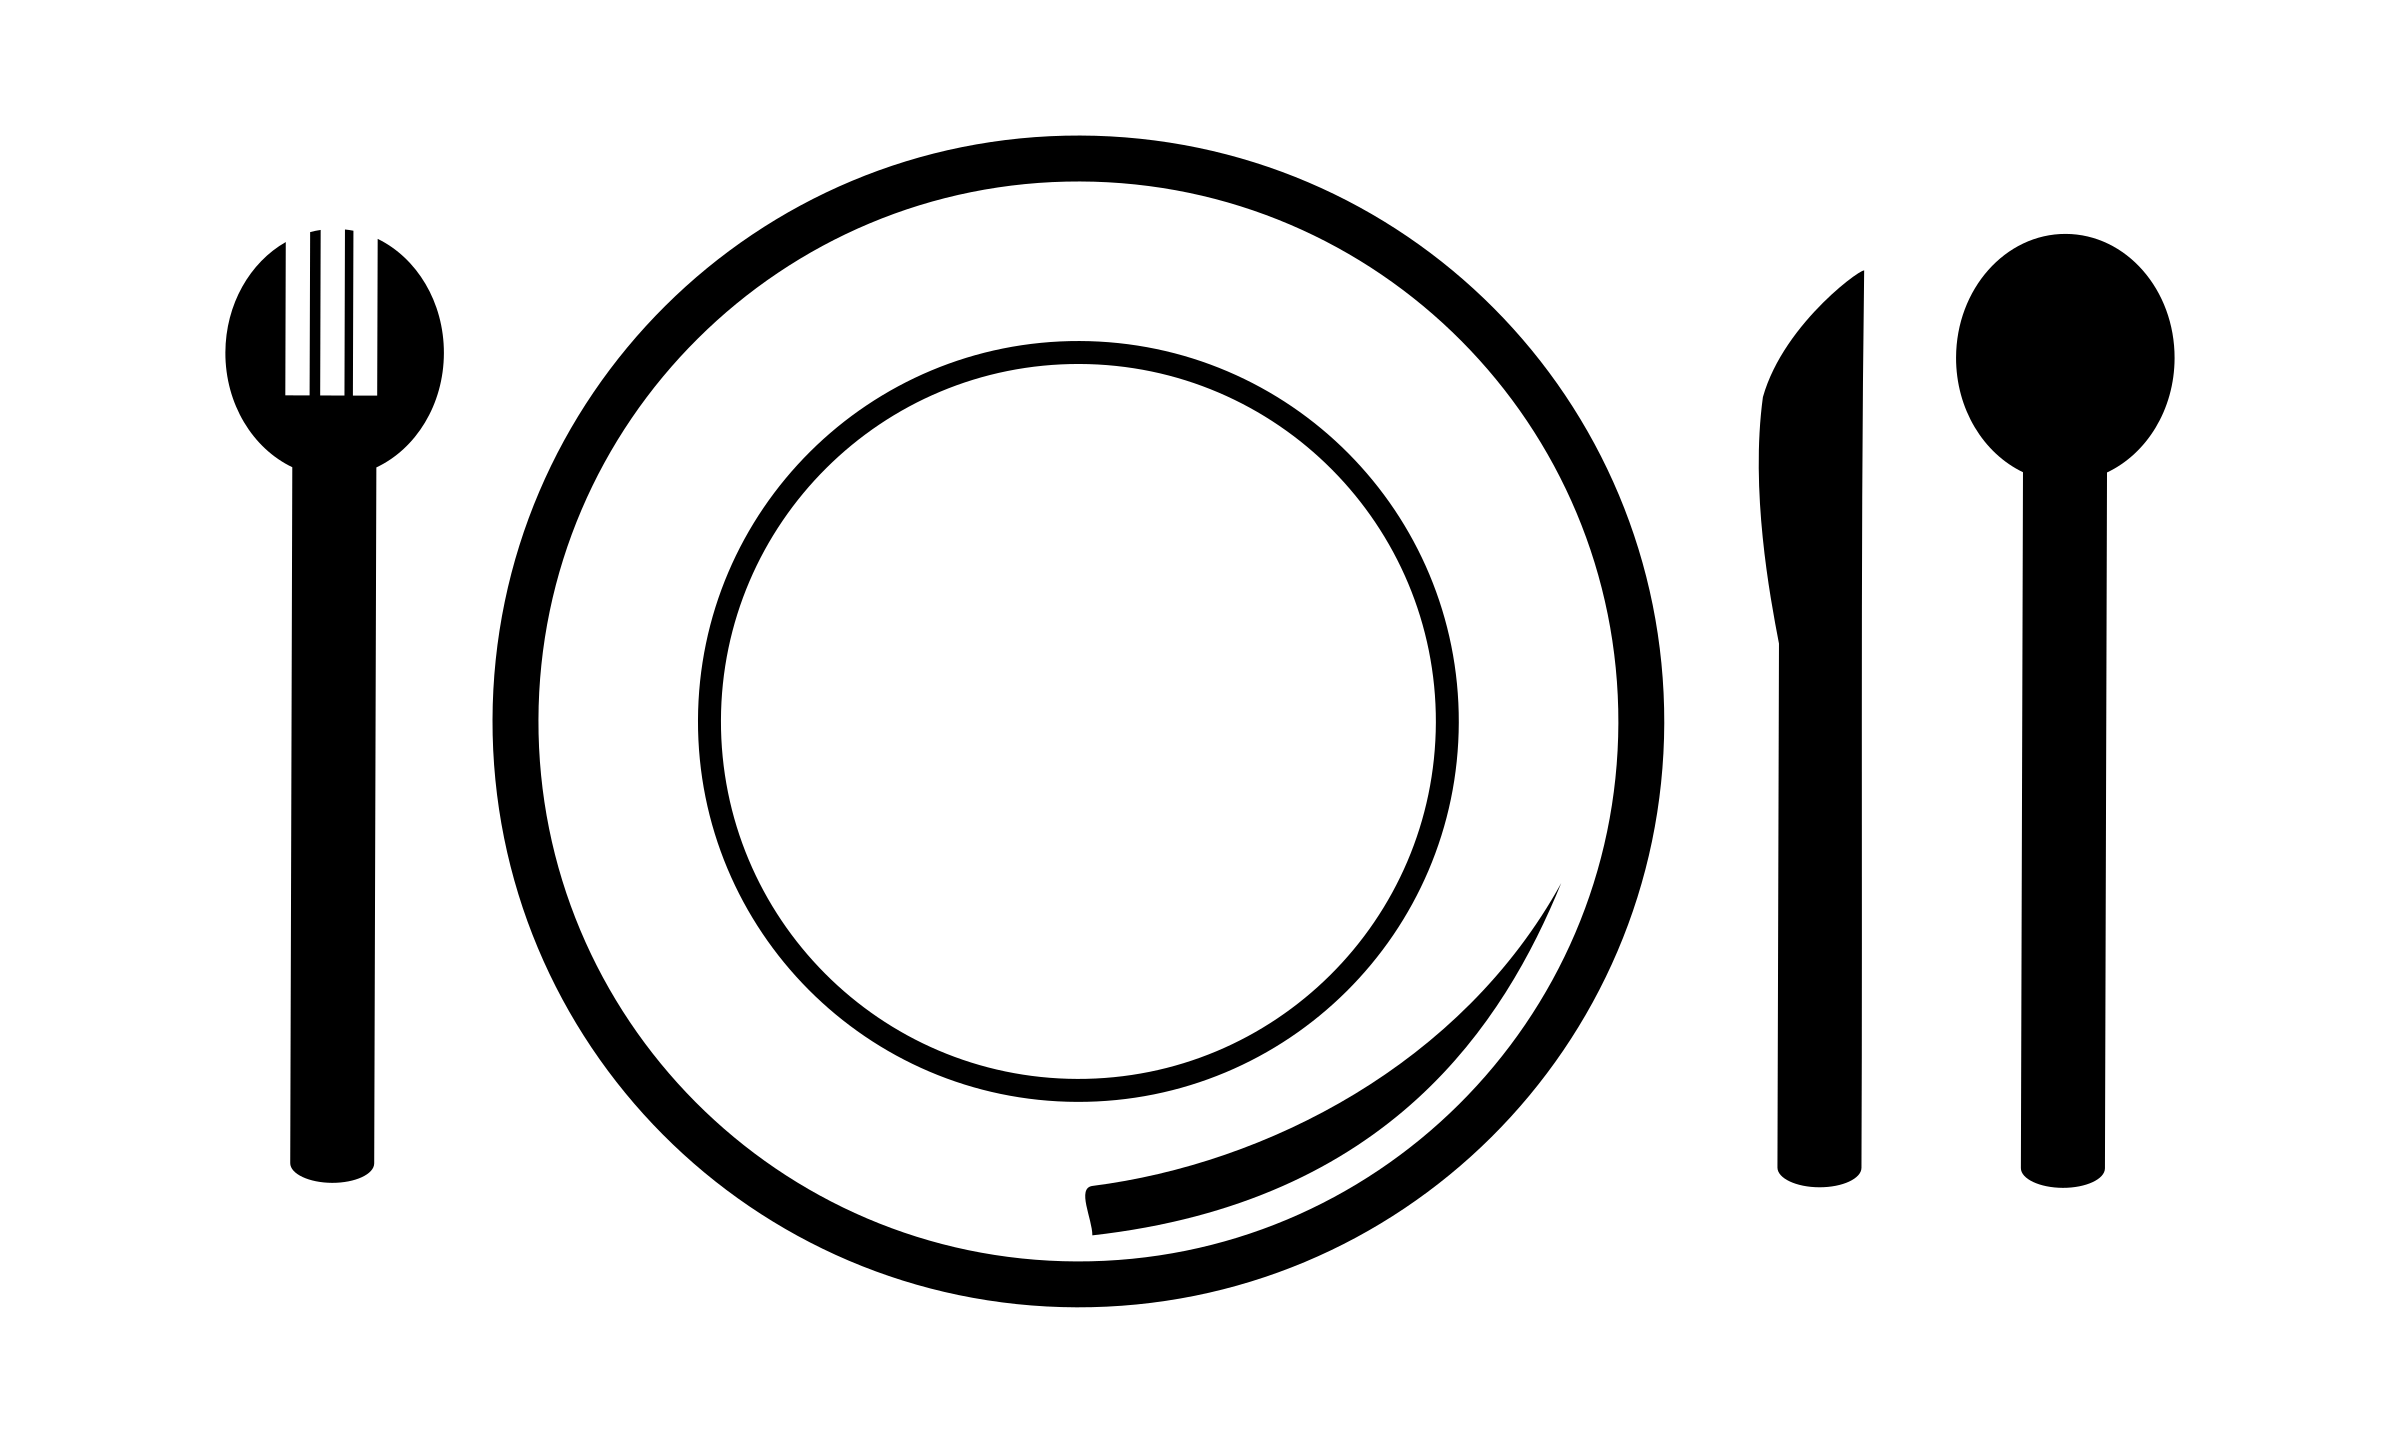 Dishes circle plate